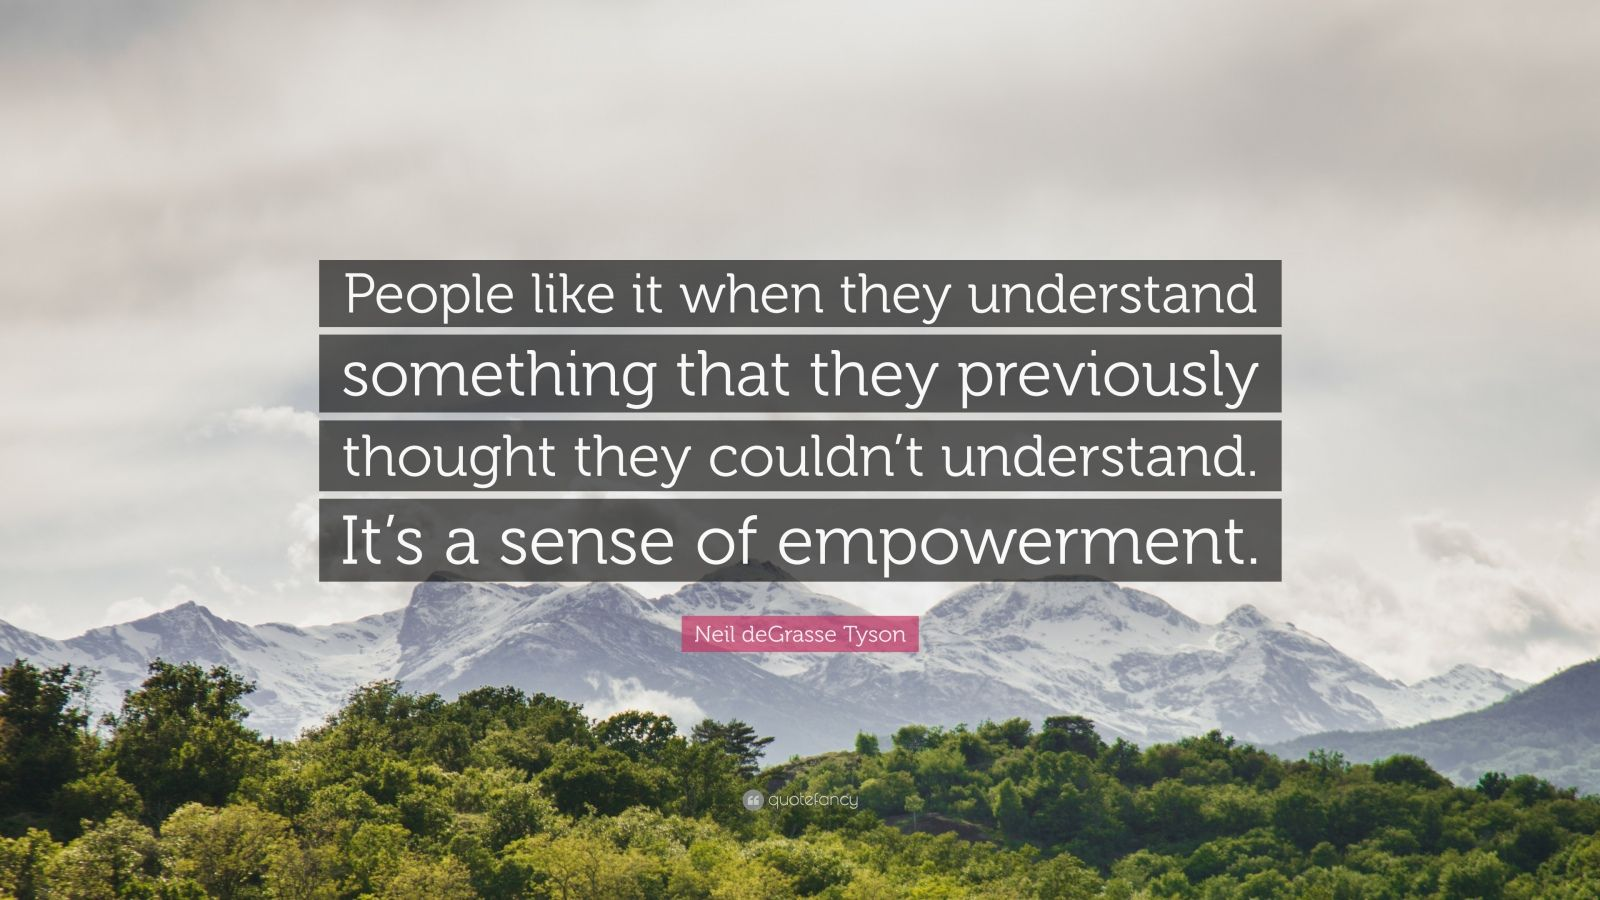 """Neil deGrasse Tyson Quote: """"People like it when they understand something that they previously thought they couldn't understand. It's a sense of empowerment."""""""